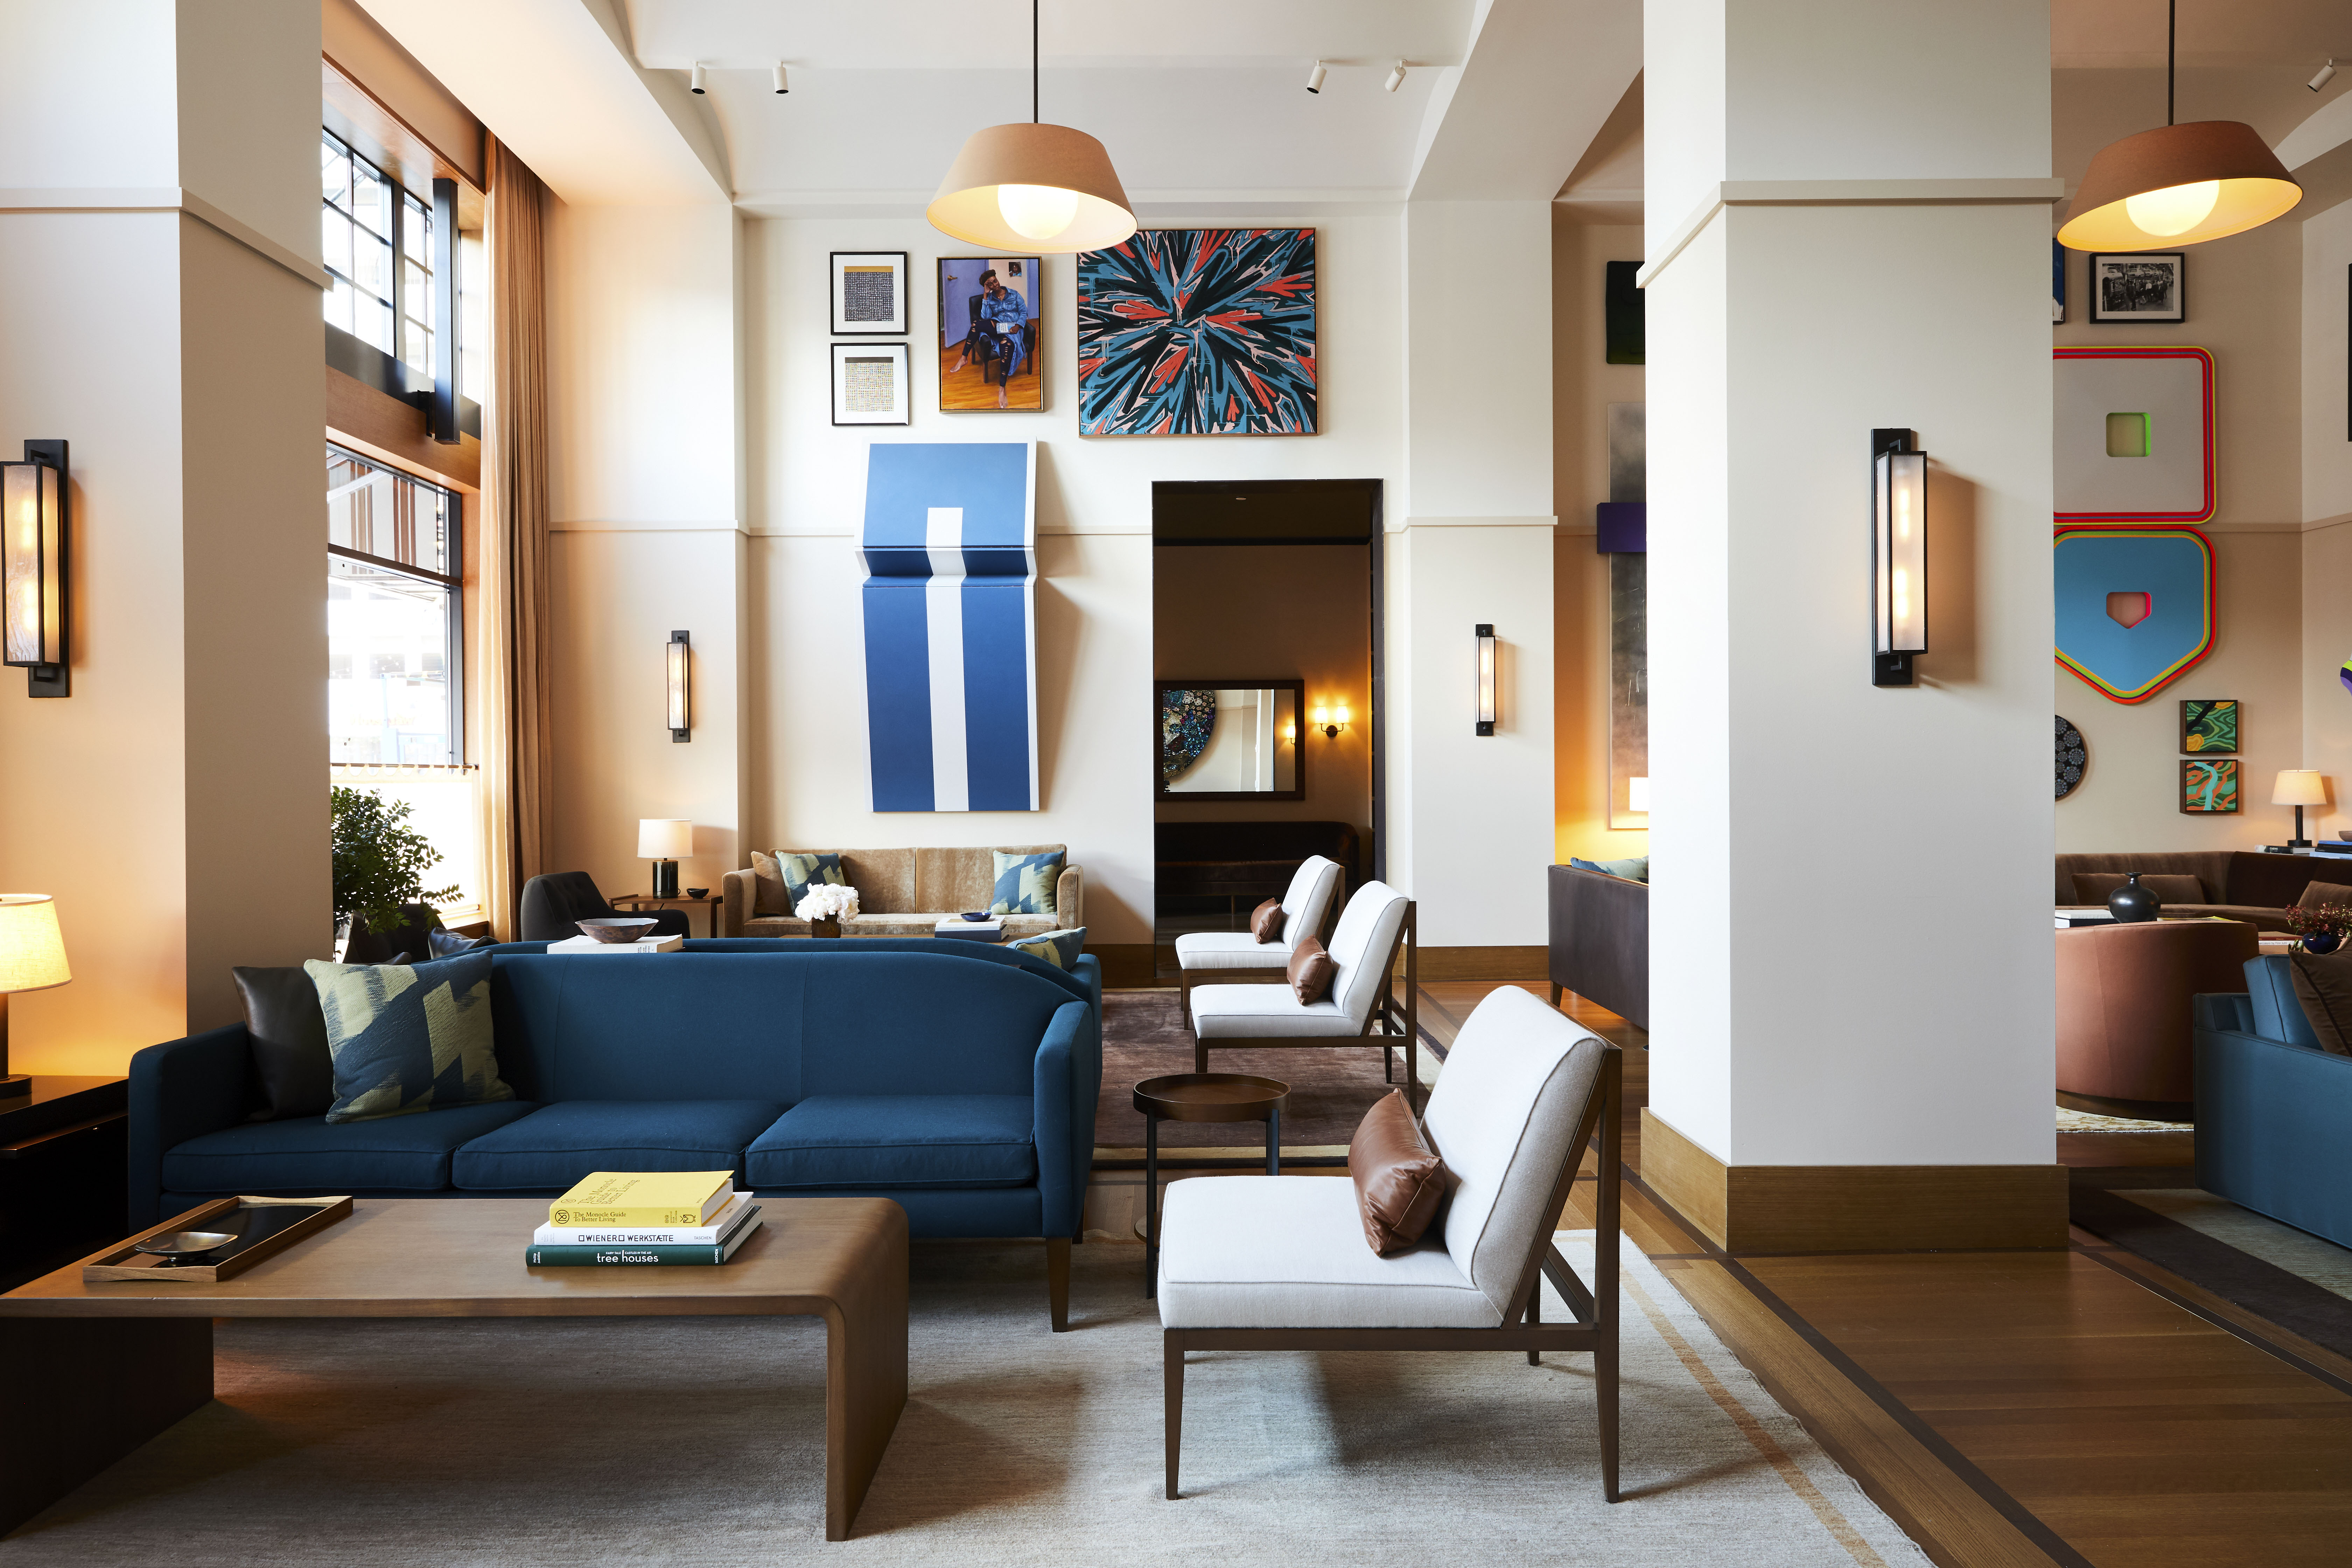 The living room at the Shinola Hotel is a common area for hotel guests and has a hip vibe with its plush couches and bright artworks | Shinola Hotel| Gachot Studio | STIR